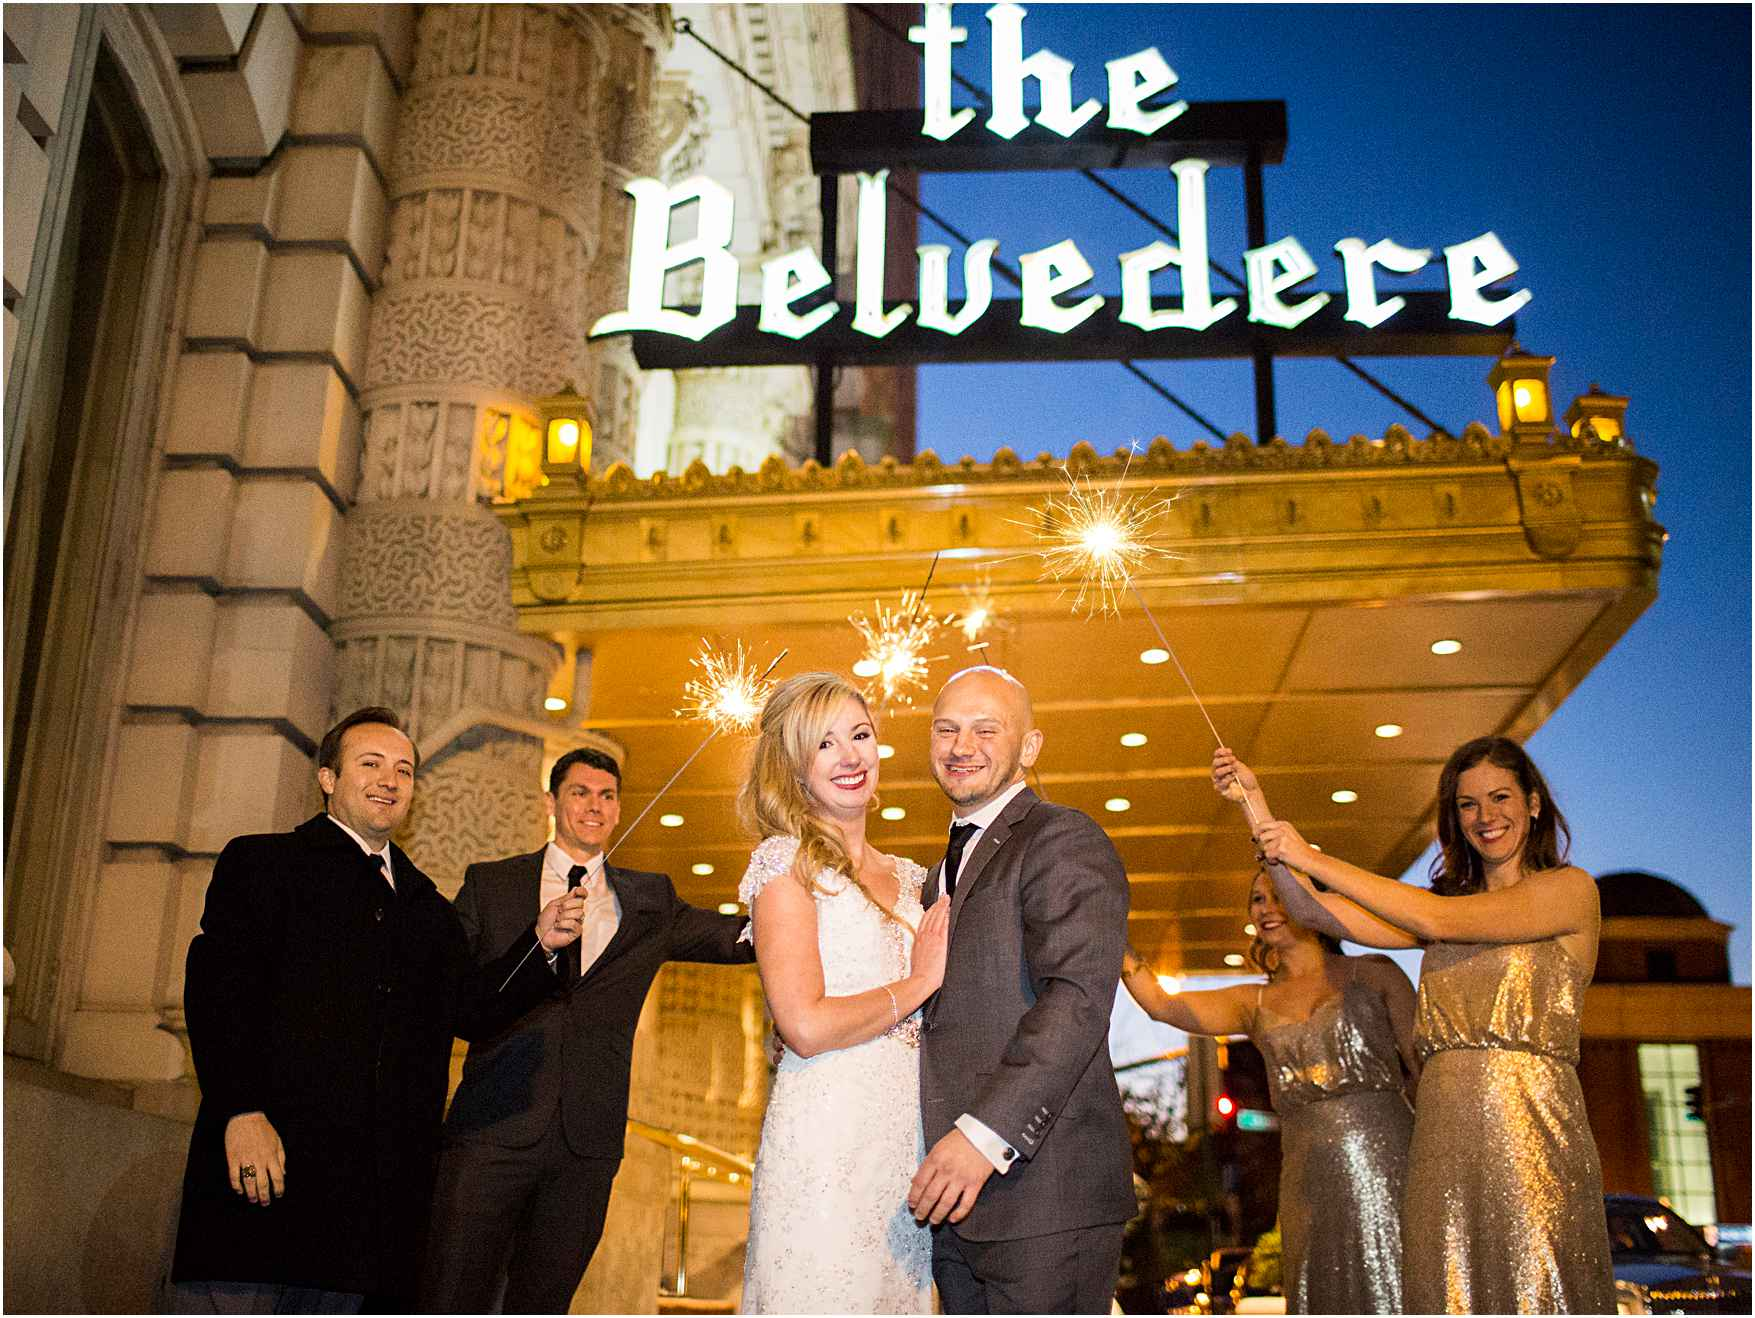 13th Floor Belvedere Wedding